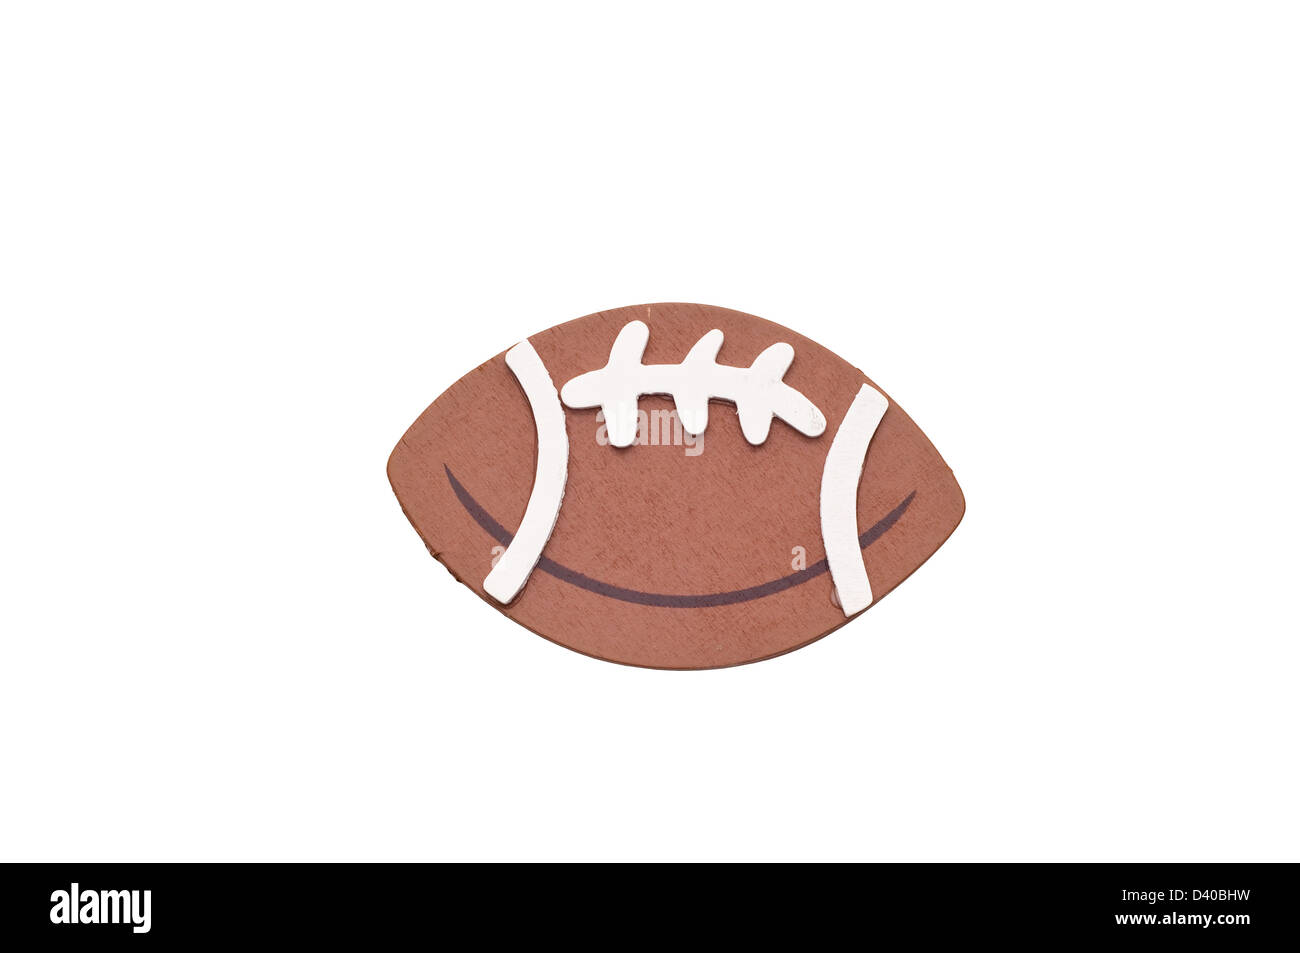 3d American football isolated on white background. - Stock Image